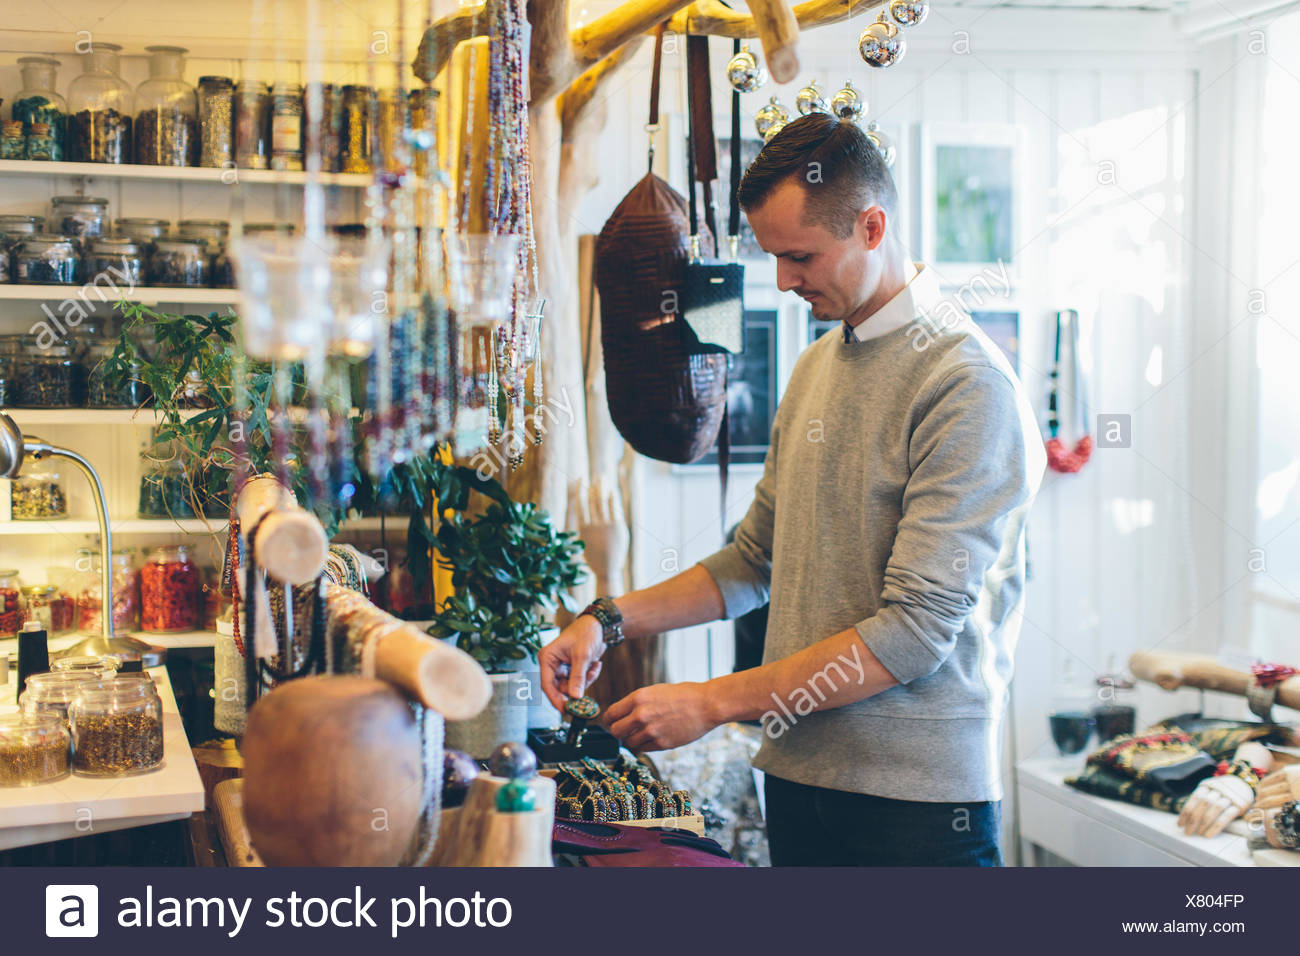 A jeweler in his store - Stock Image